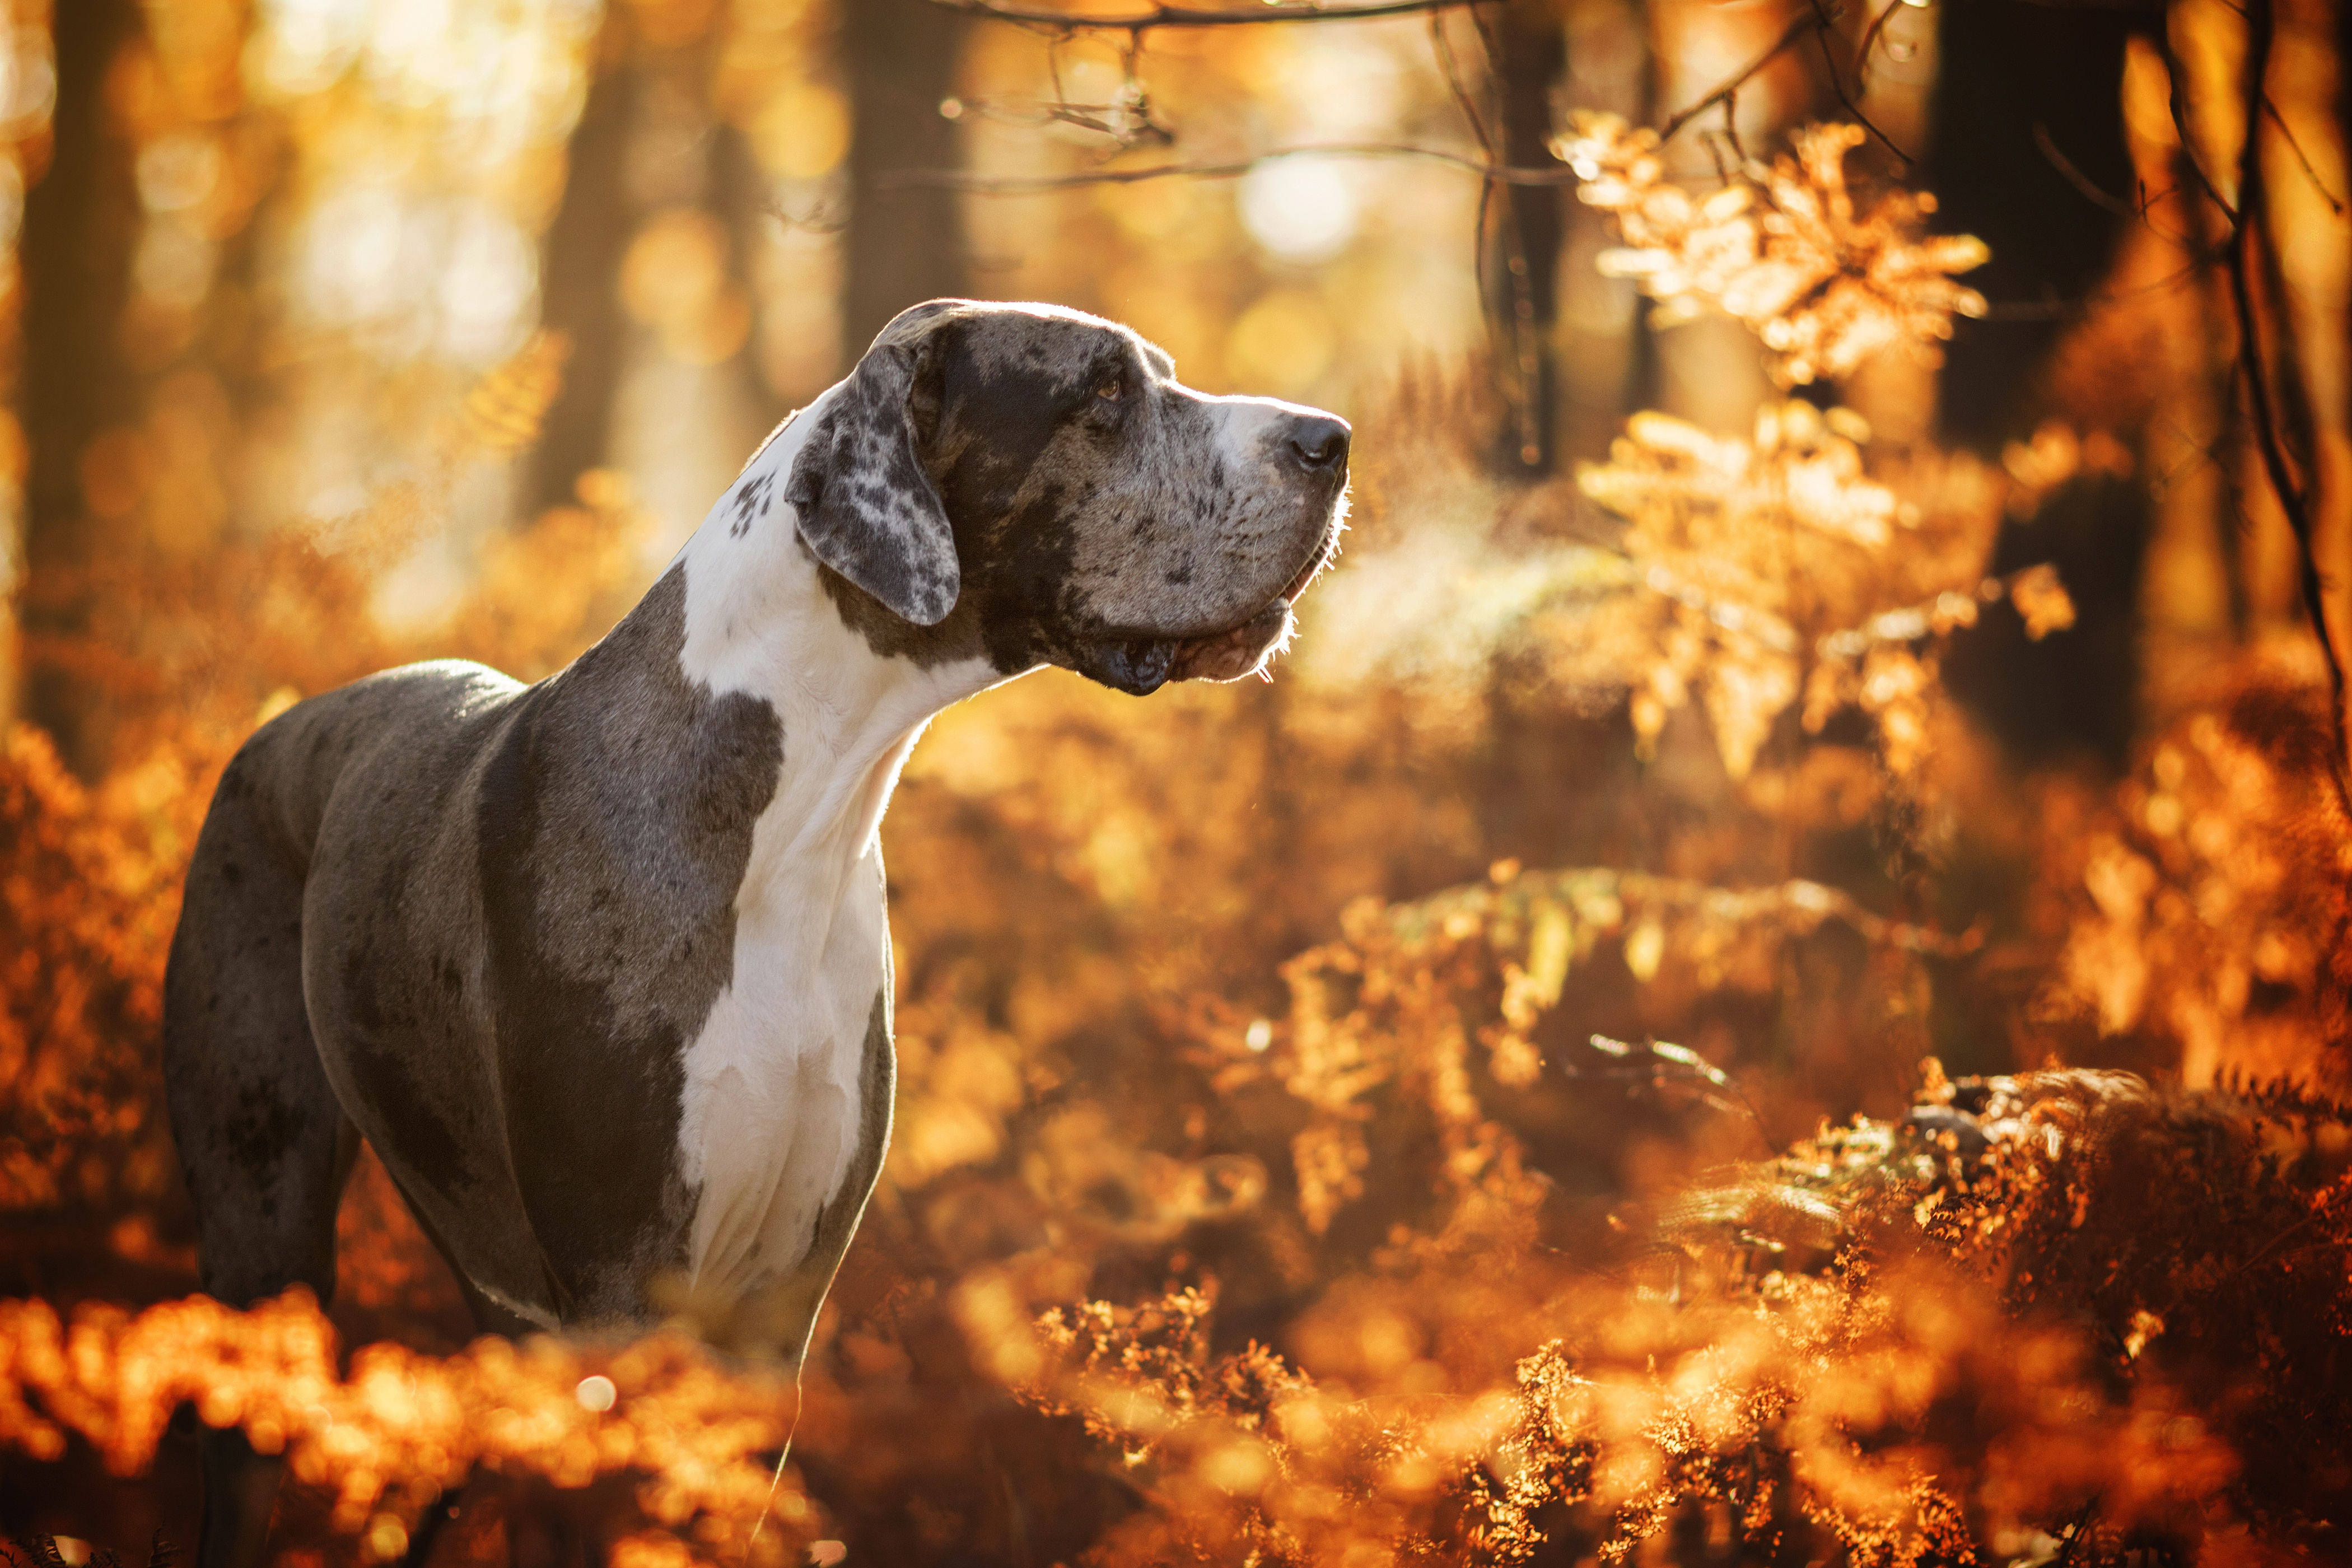 Great Dane Dog Wallpapers: Great Dane 4k Ultra HD Wallpaper